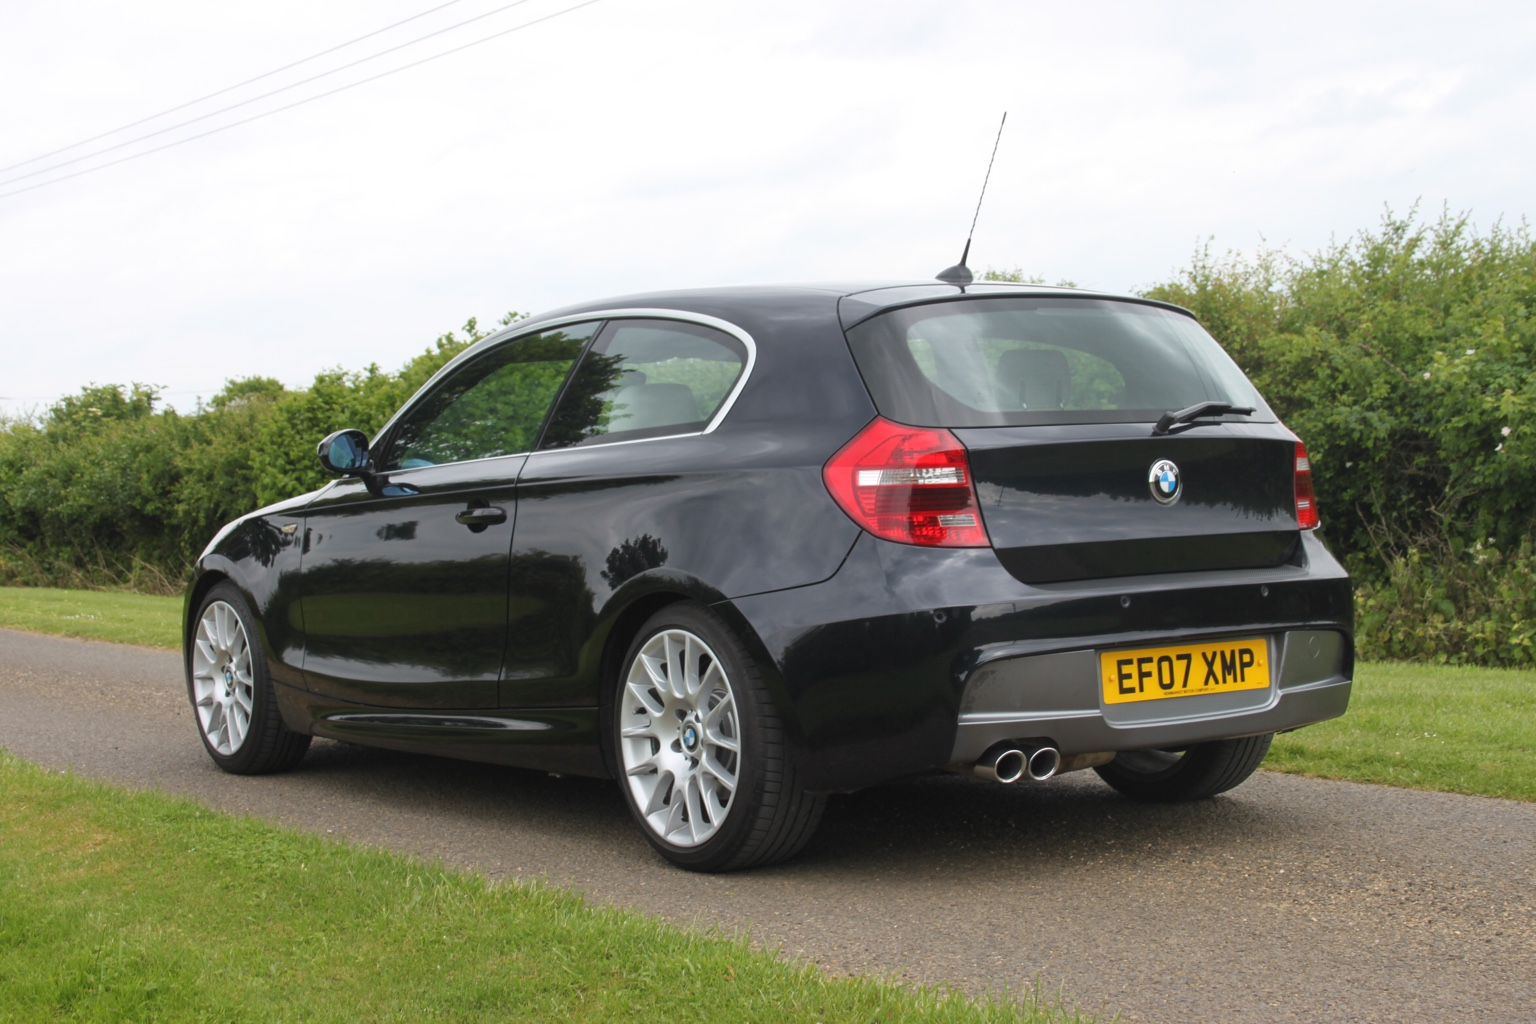 2007 Bmw 130i M Sport Le - Sold